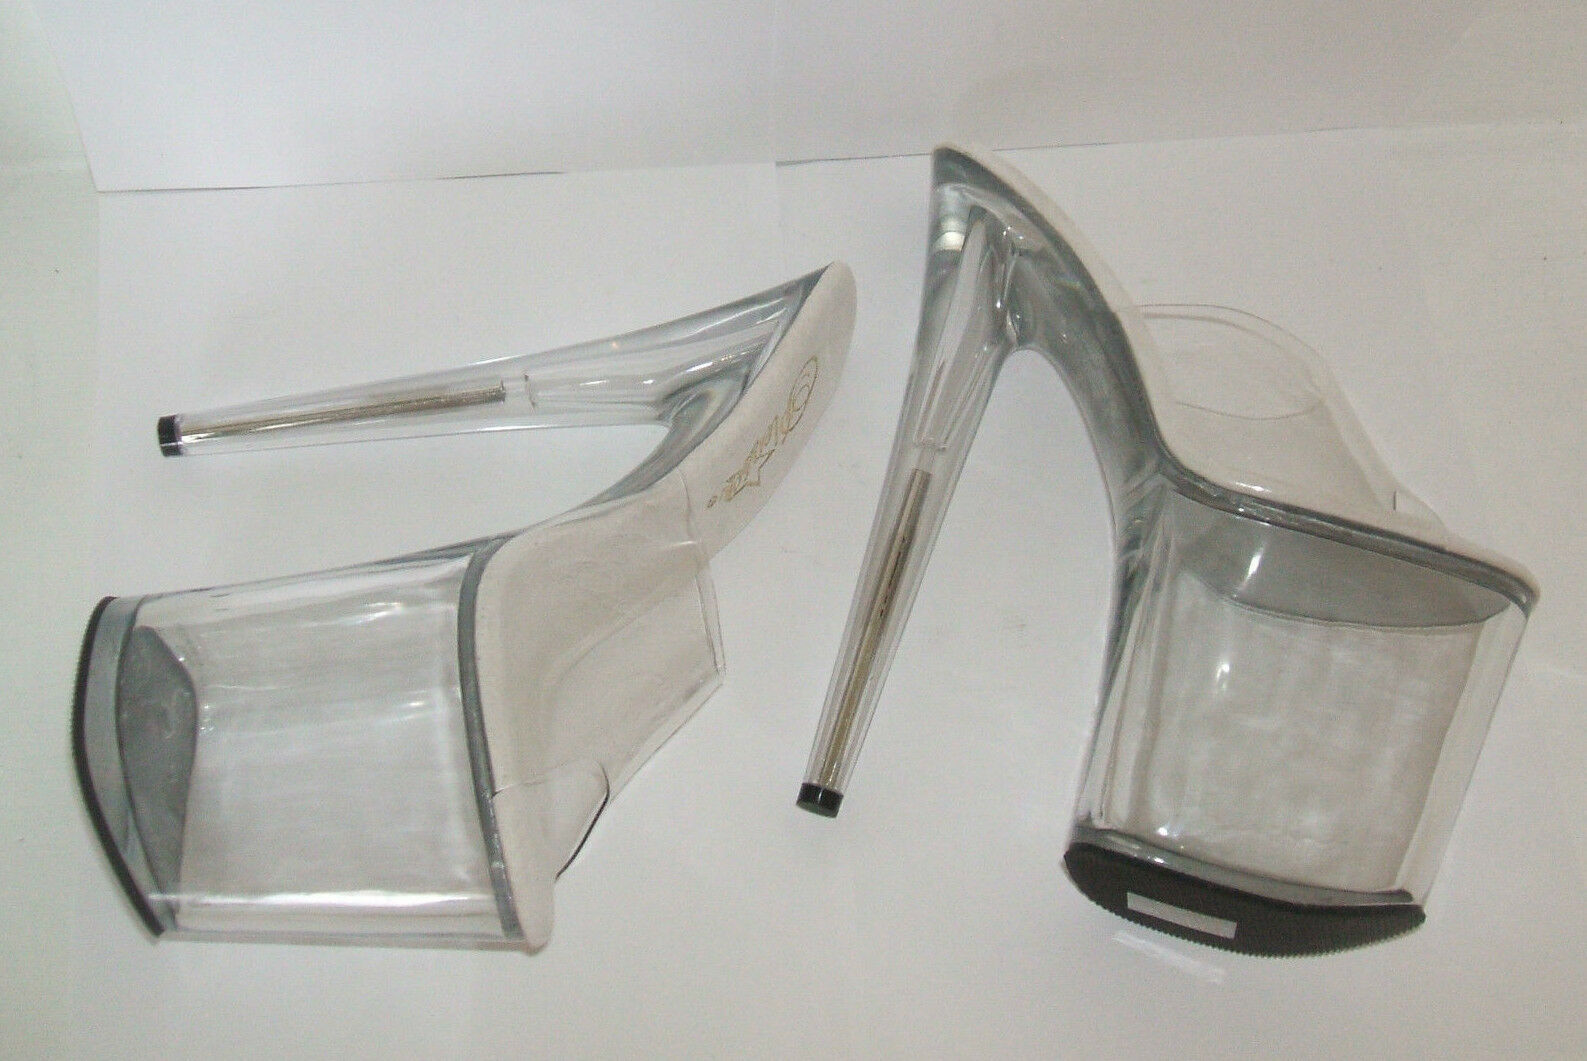 PLEASER SIZE 2 2.5 3 FLAMINGO 801 CLEAR PERSPEX SEXY FETISH 8